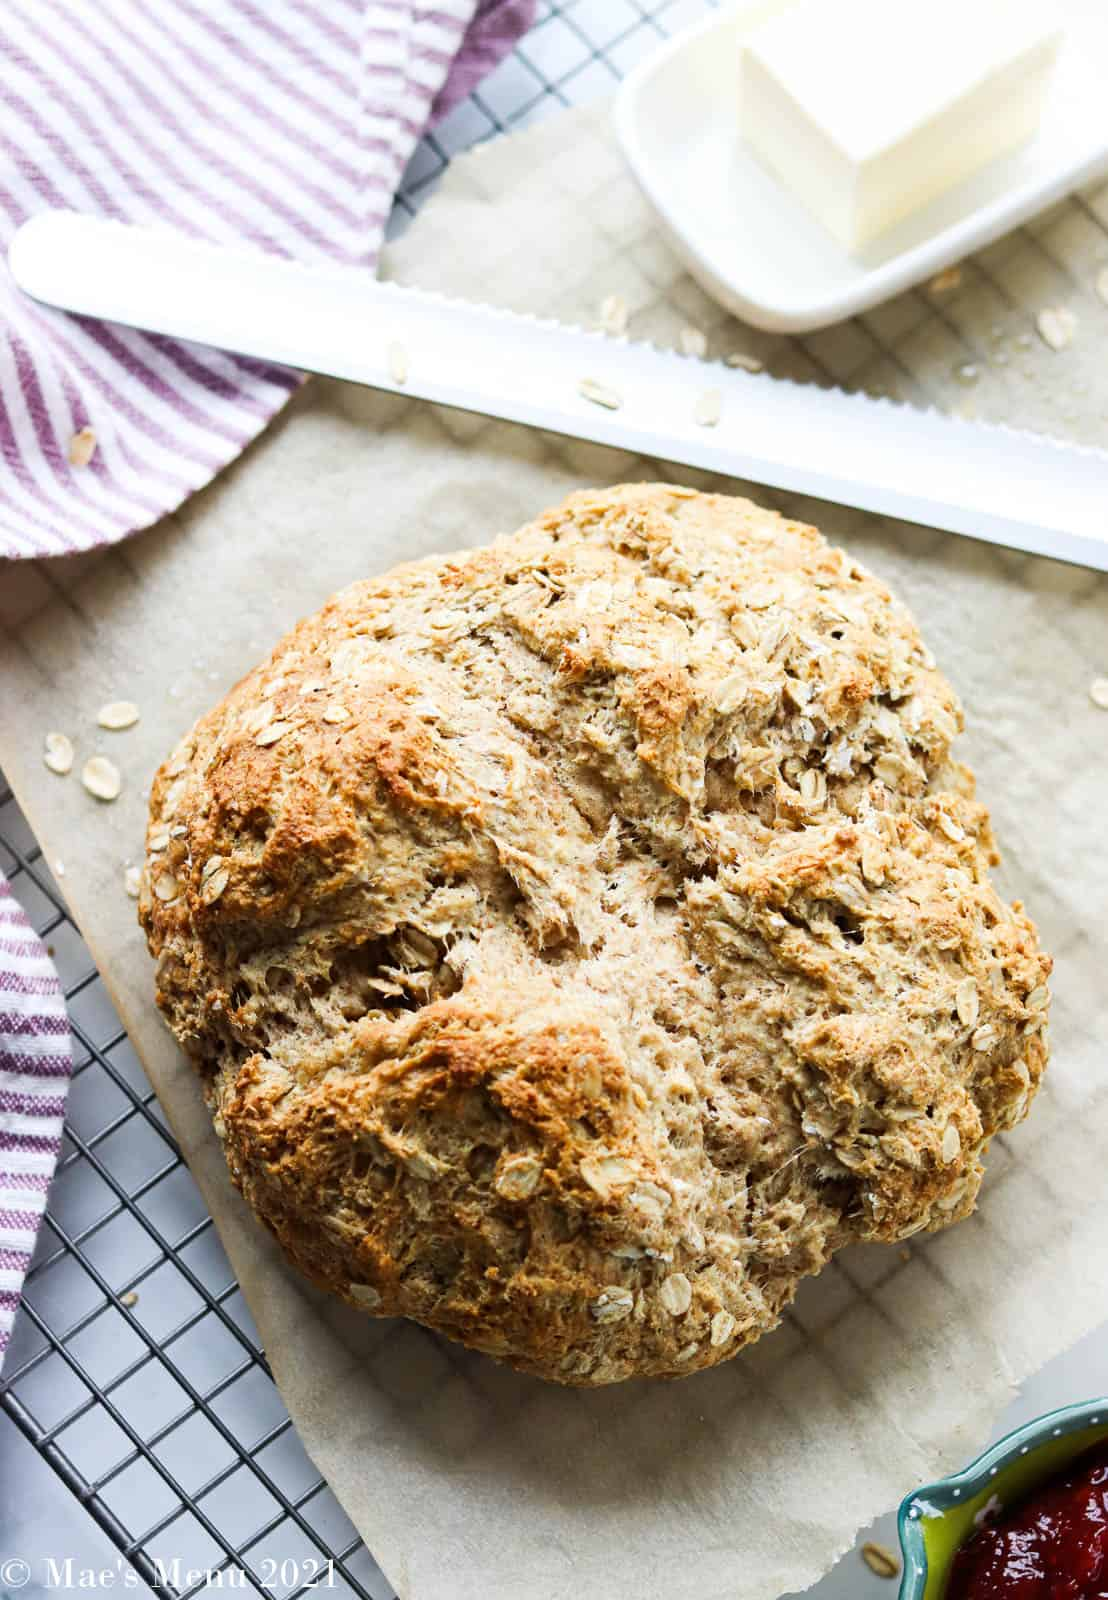 A loaf of oatmeal bread surrounded by butter, jam, and a serrated knife